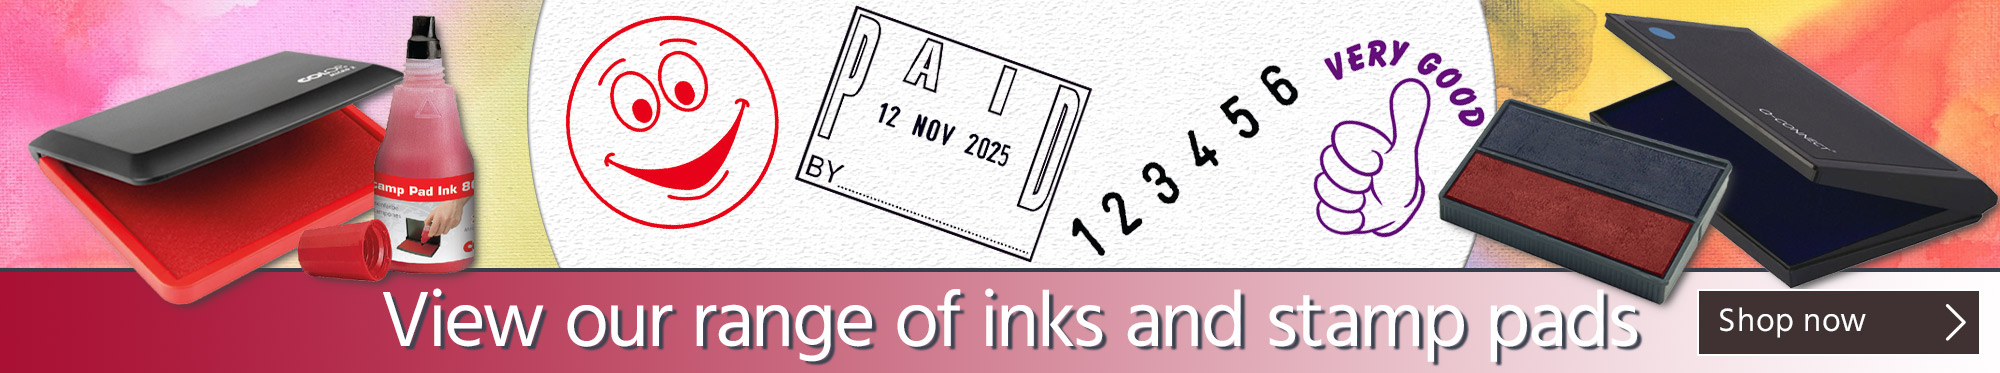 View Our Range of Inks and Stamp Pads